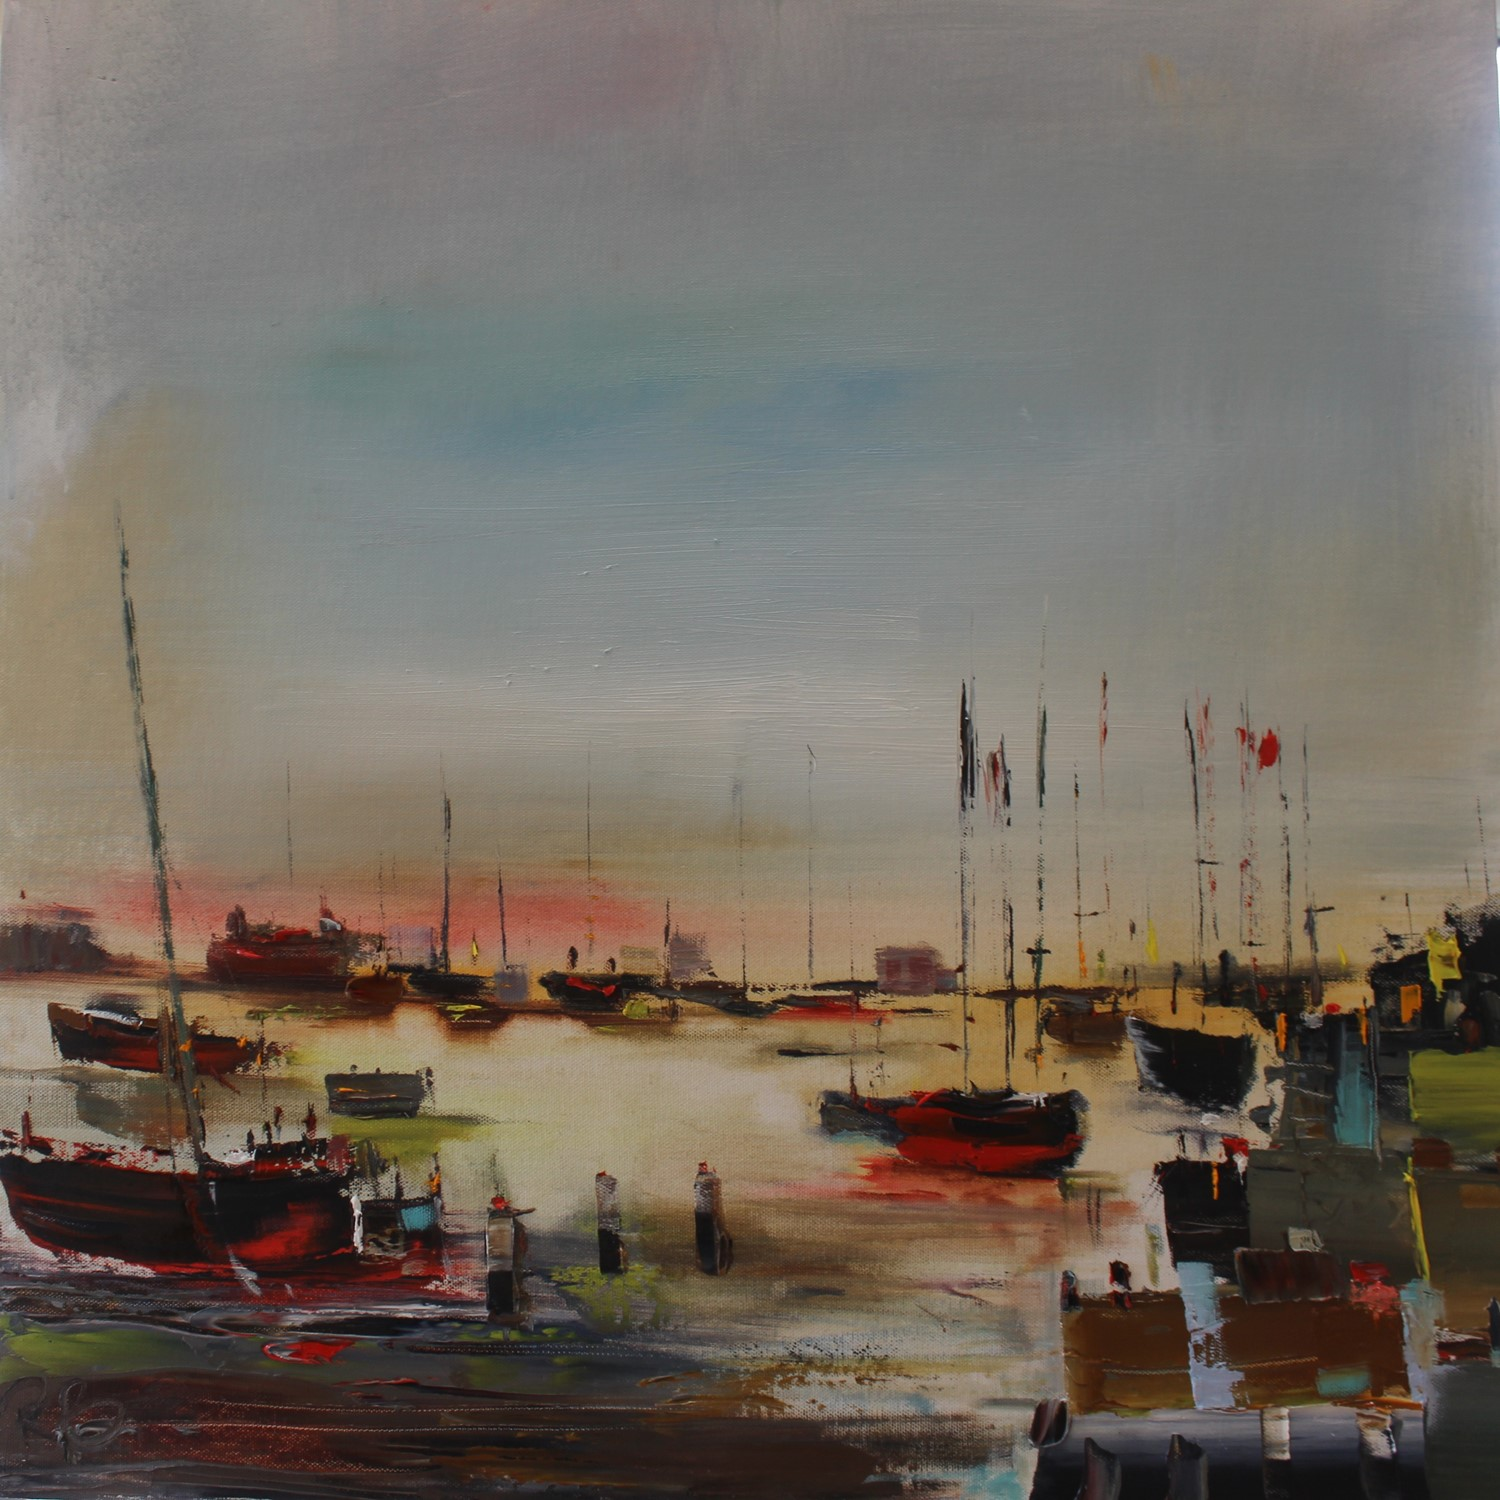 'Harbour Silhouettes' by artist Rosanne Barr